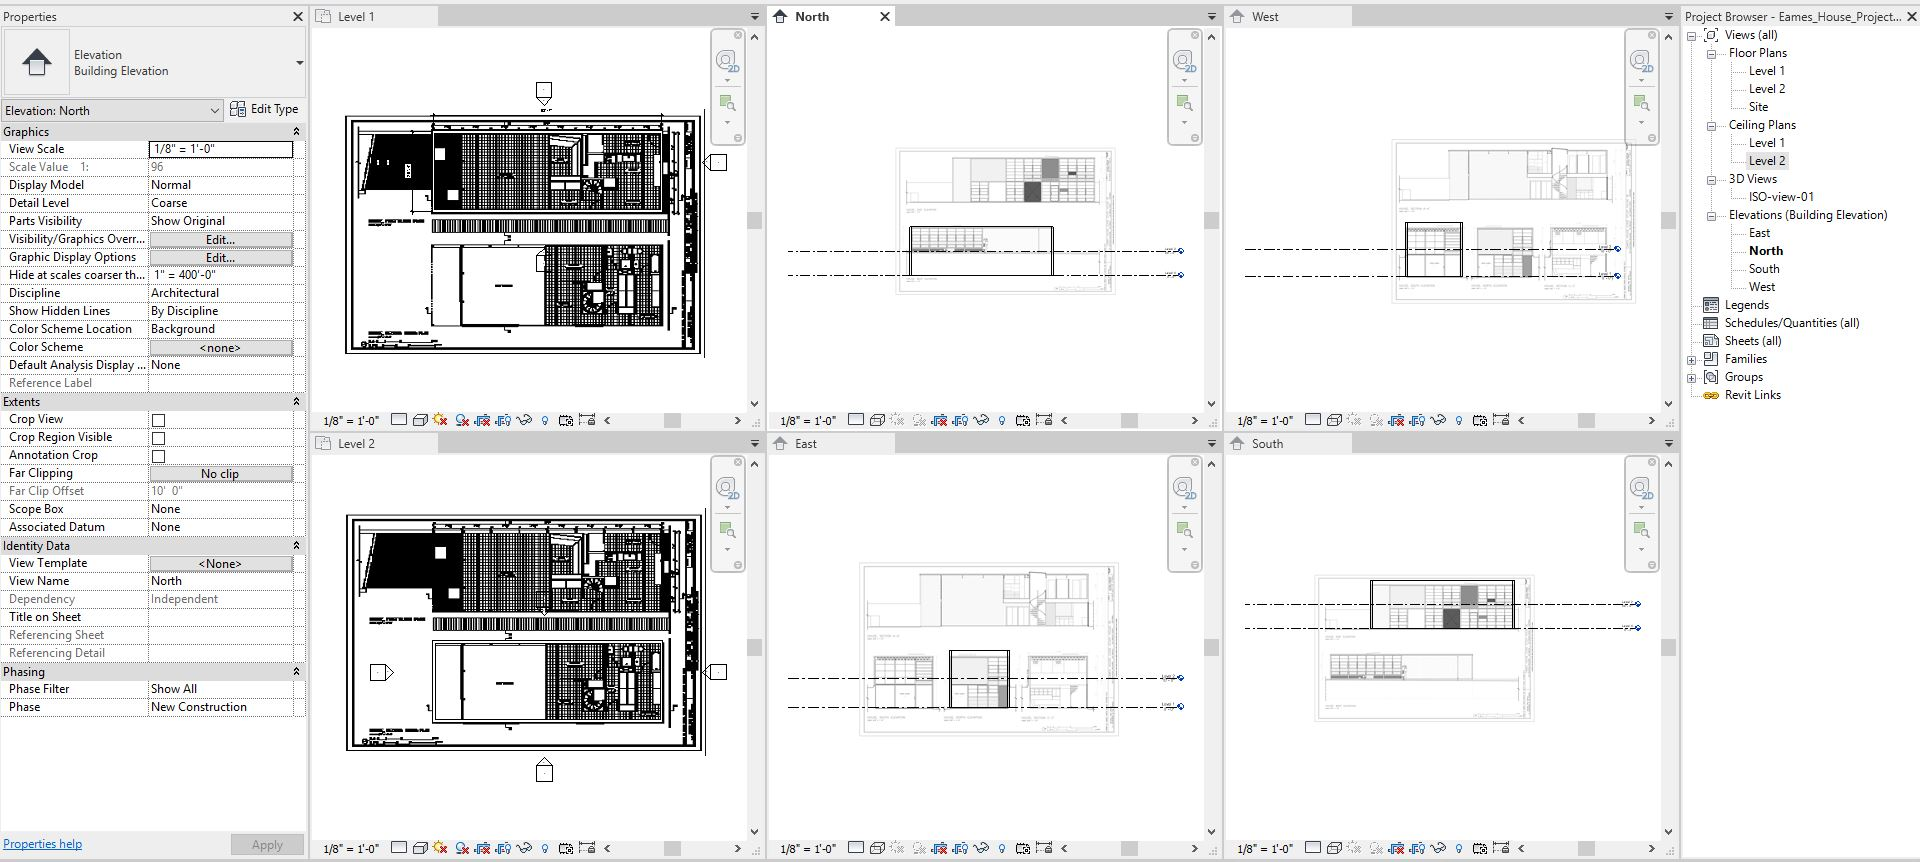 It shows the import drawings for all views.